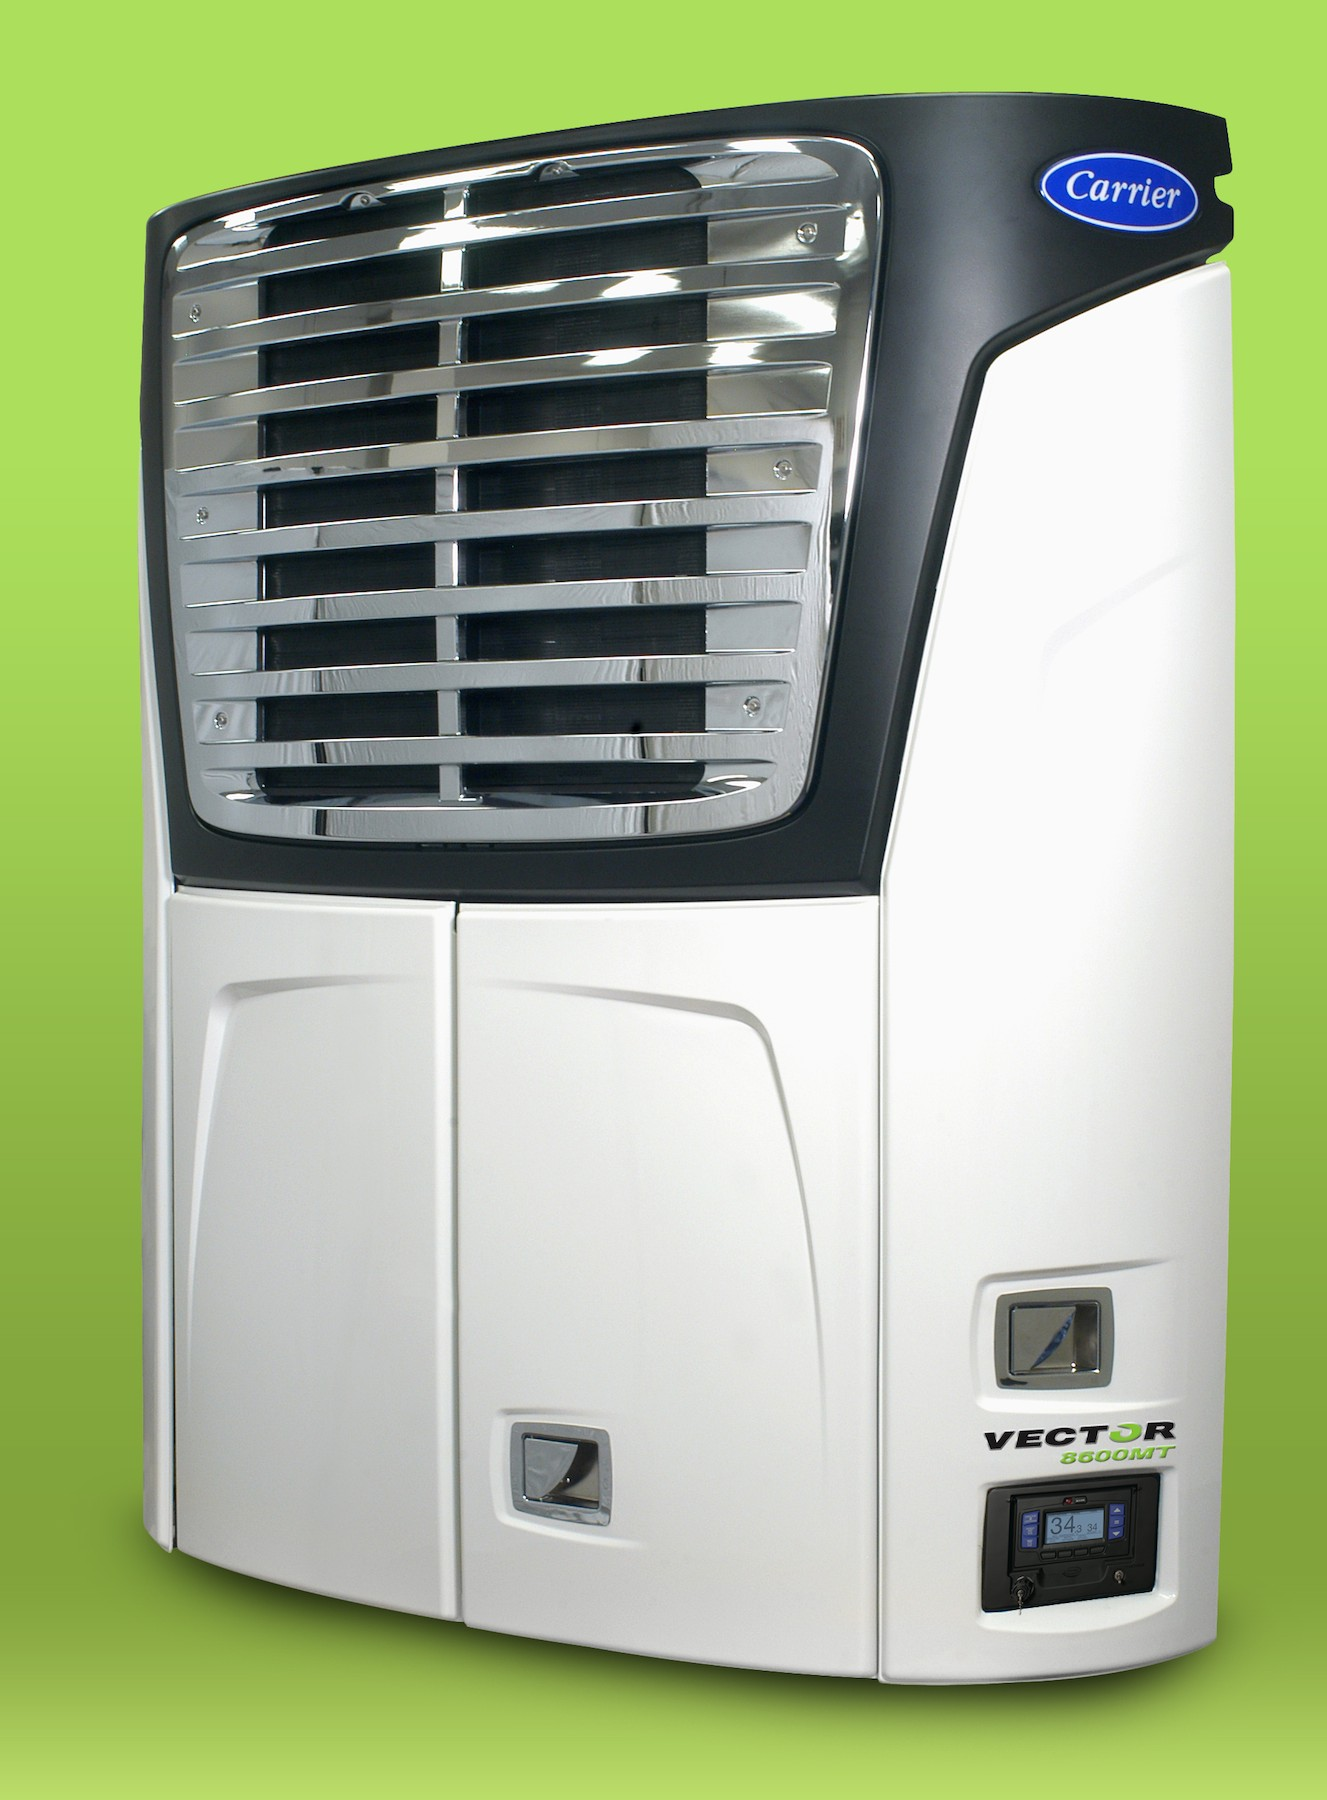 Temp Cooling Units : Carrier introduces hybrid vector multi temperature fridge